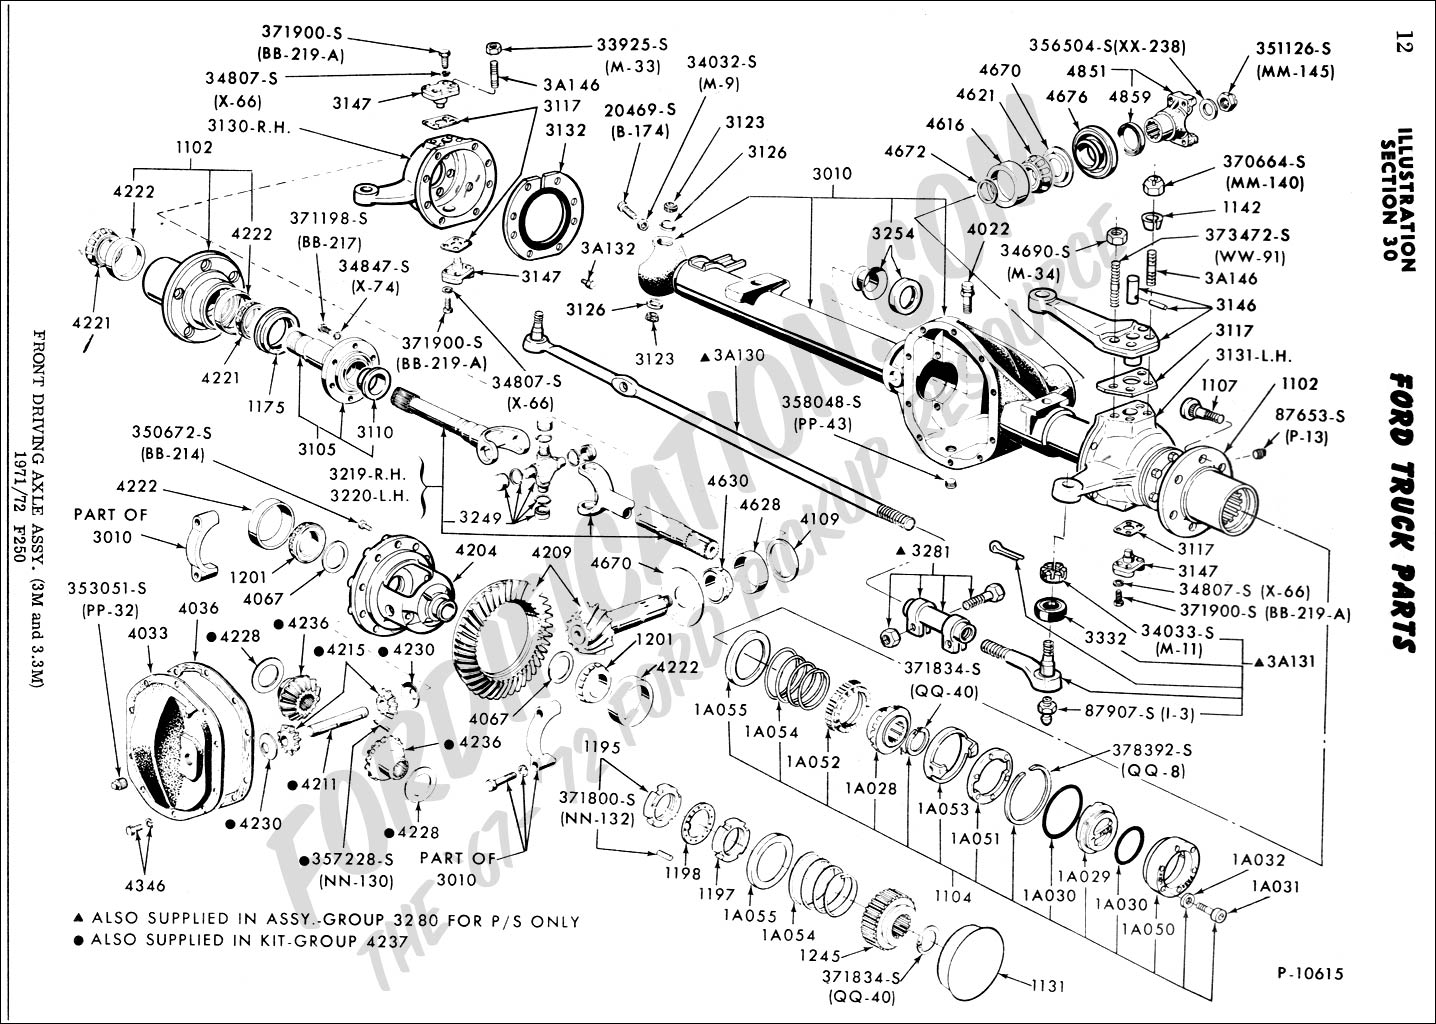 hight resolution of 2000 ford f250 front end diagram wiring diagrams rh 20 shareplm de 2003 f250 front end parts 2003 f250 front axle diagram